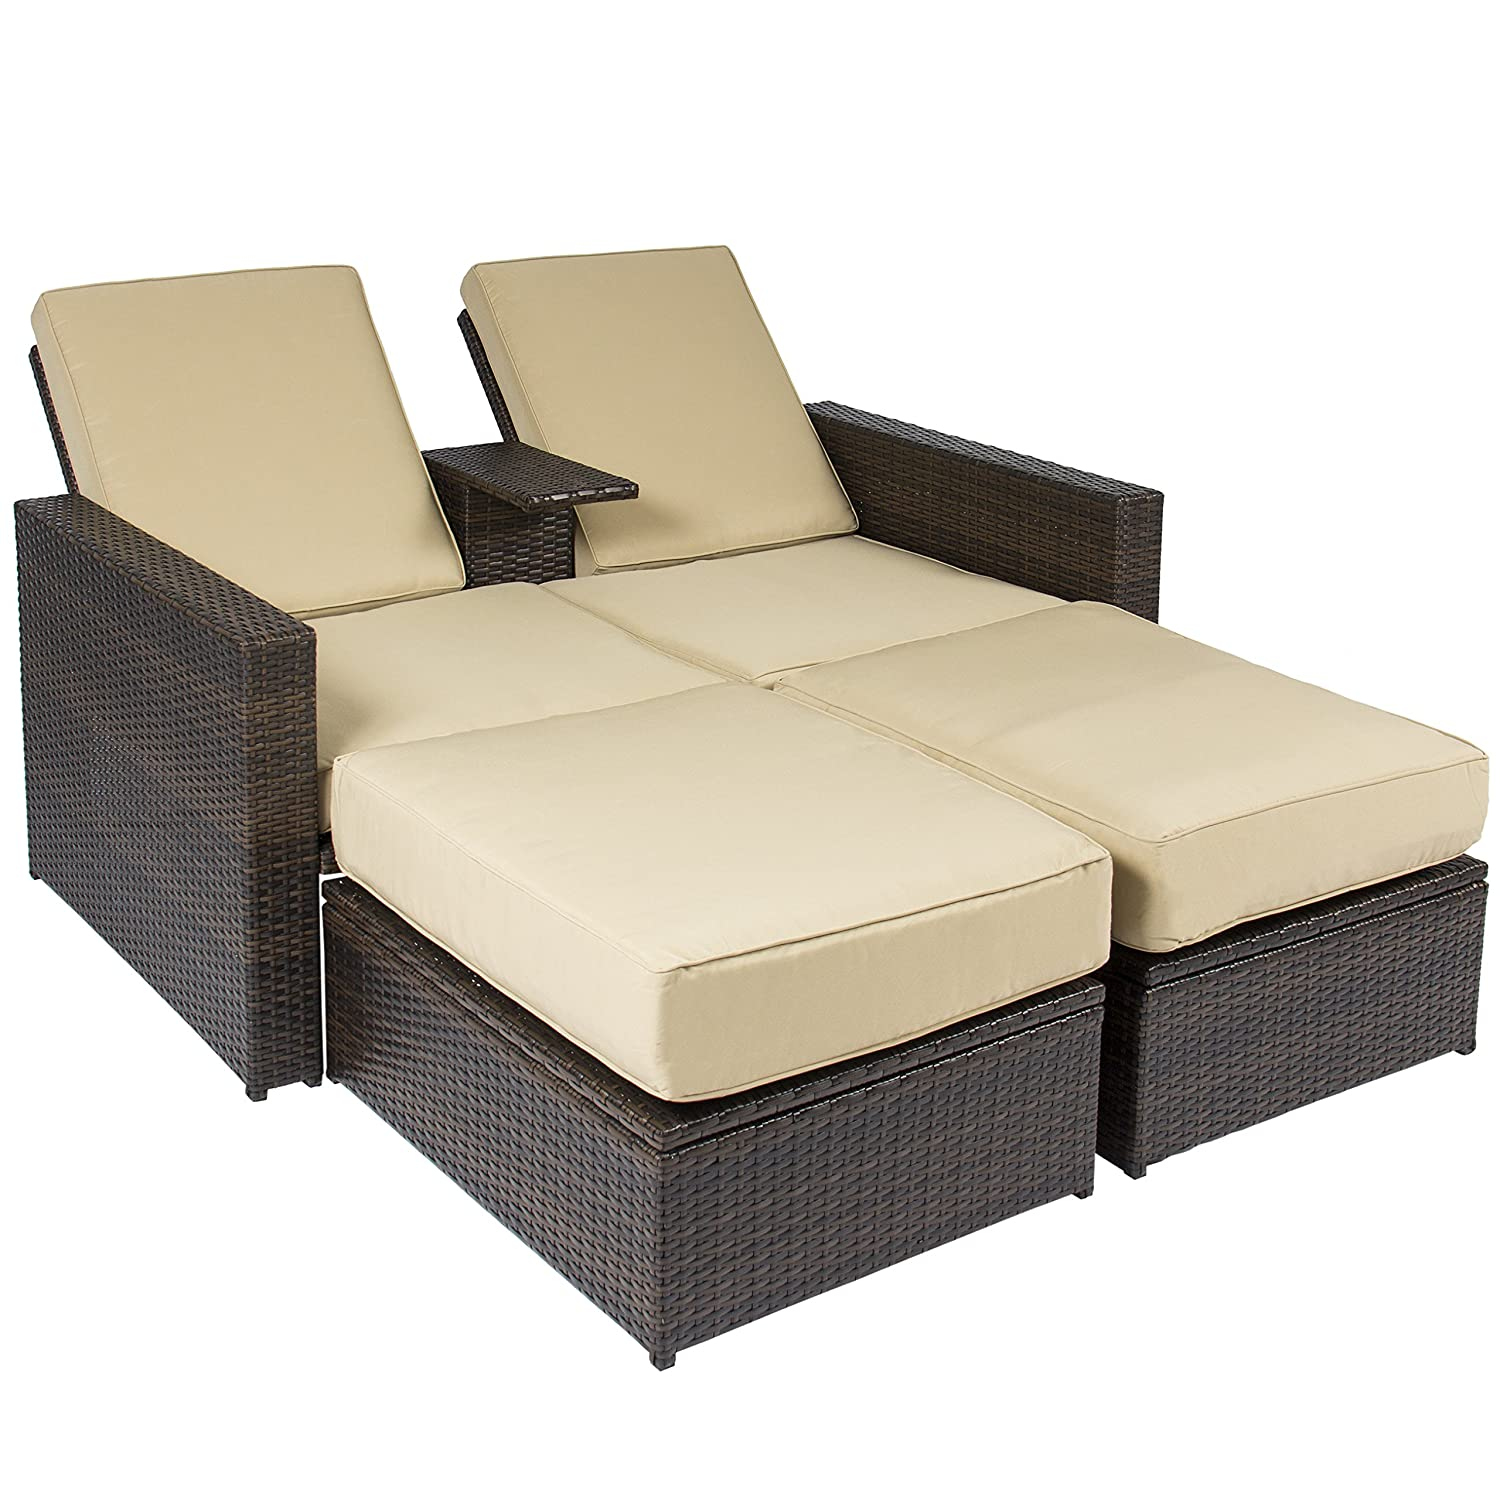 Amazon.com : Best Choice Products Outdoor 3pc Rattan Wicker Patio ...